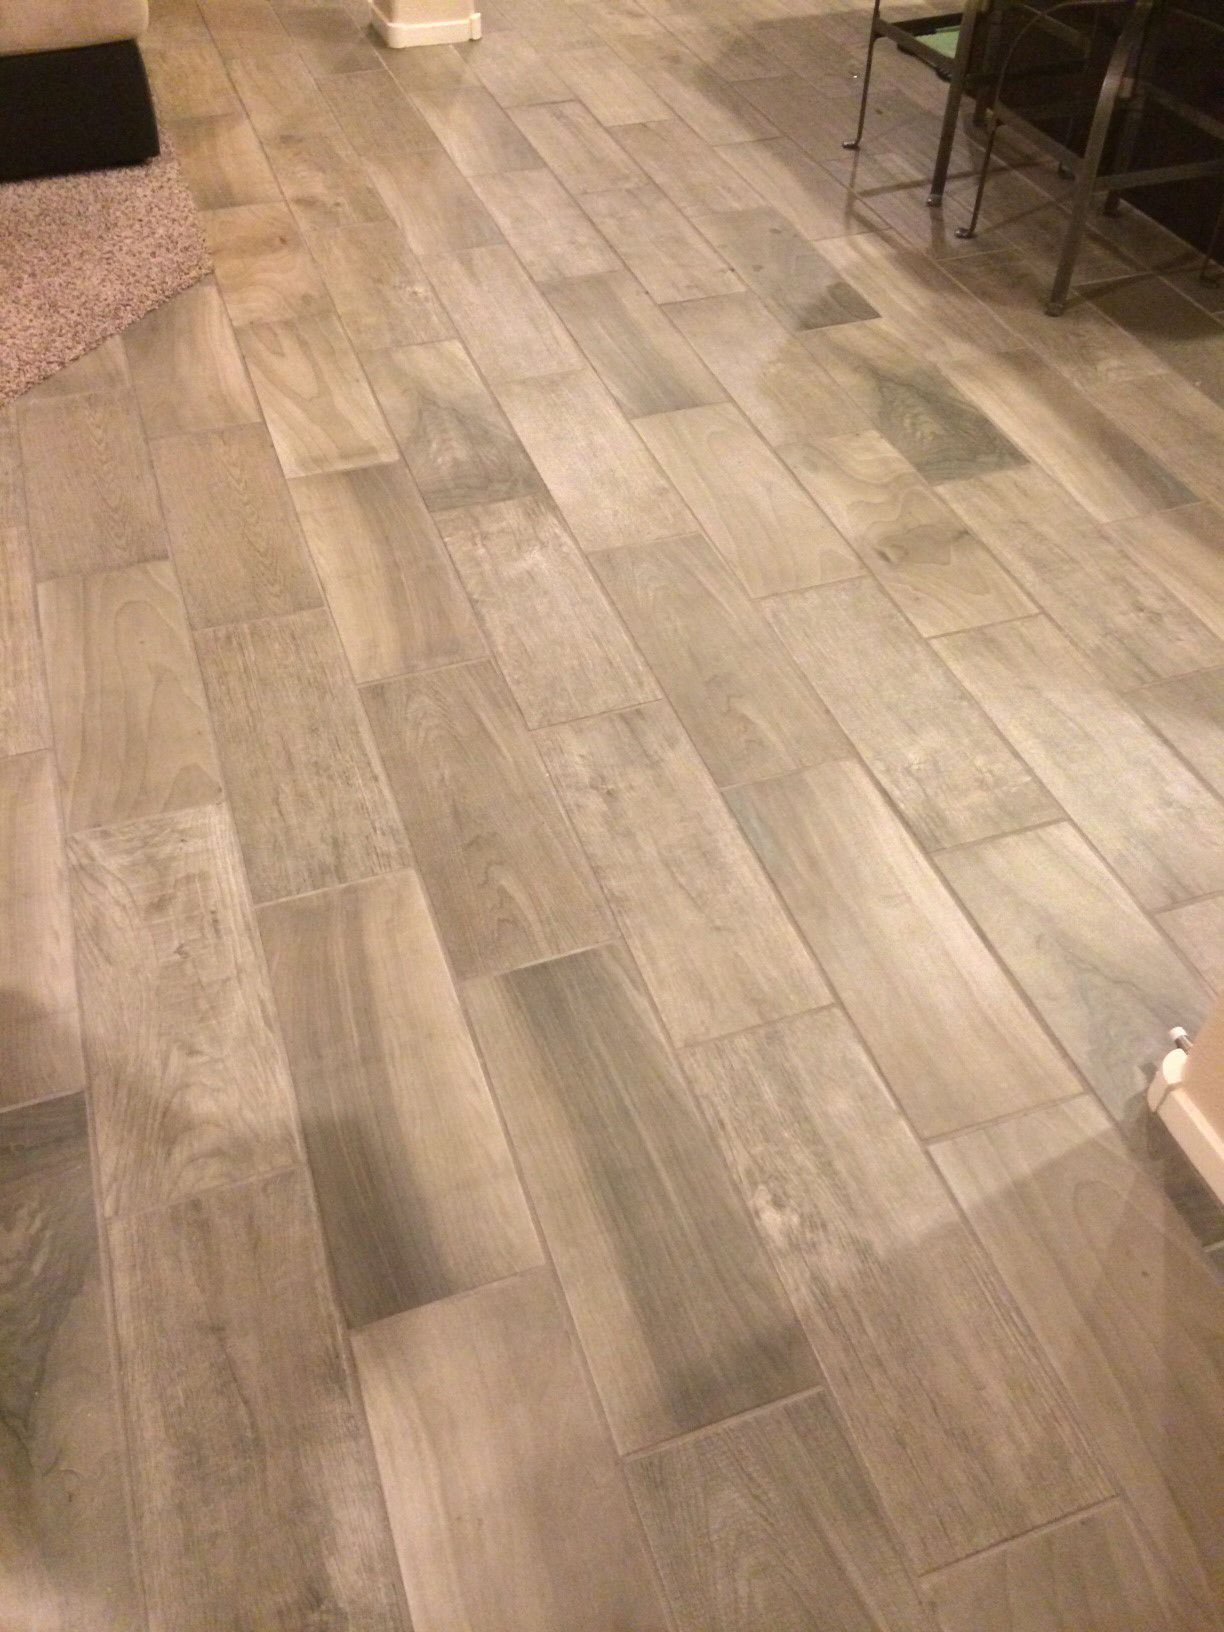 Emblem Color Gray Em03 Daltile Ceramic Wood Looks